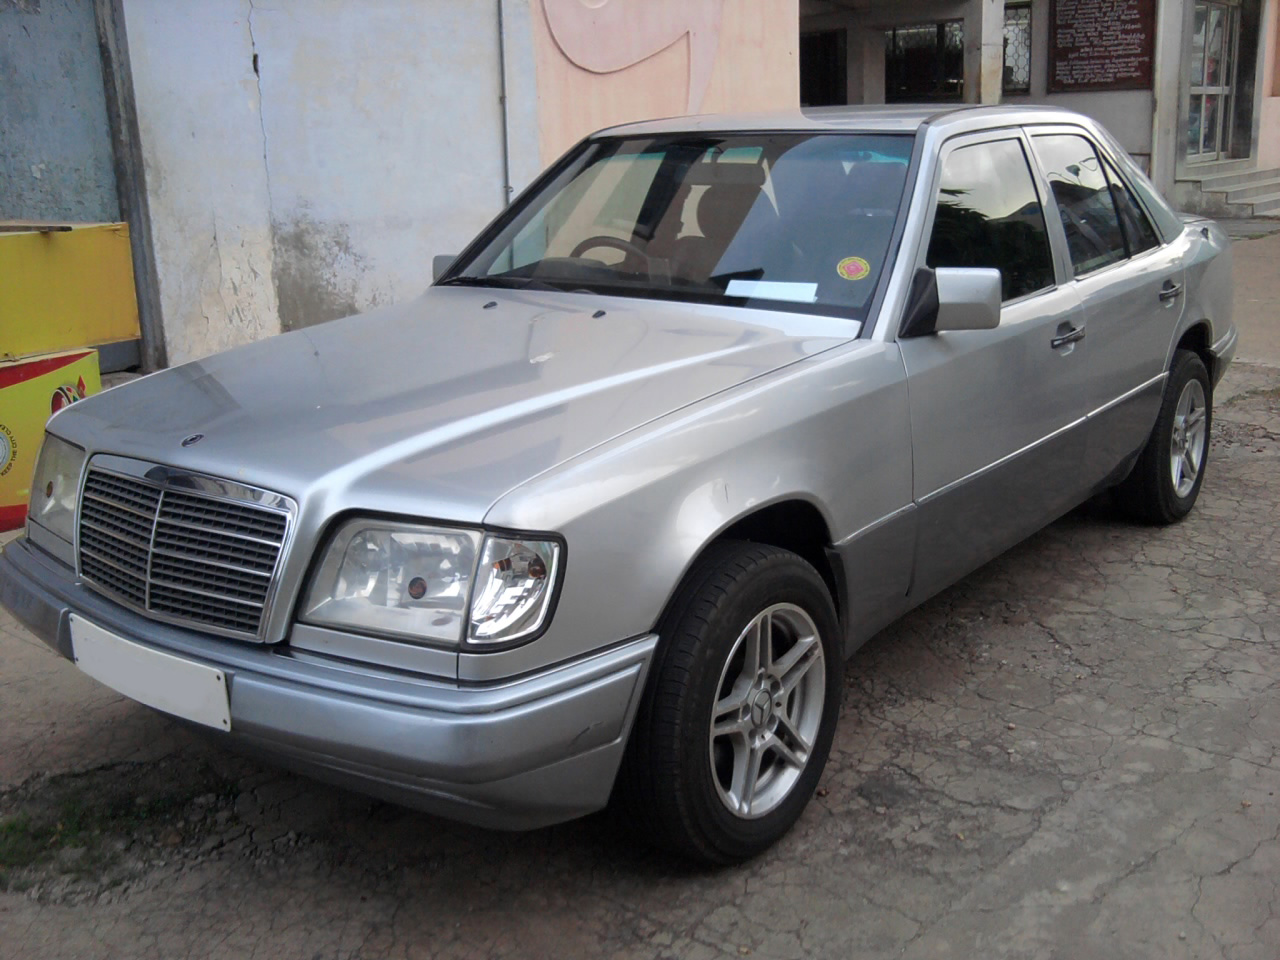 1996 mercedes benz e class photos informations articles On mercedes benz e class 1996